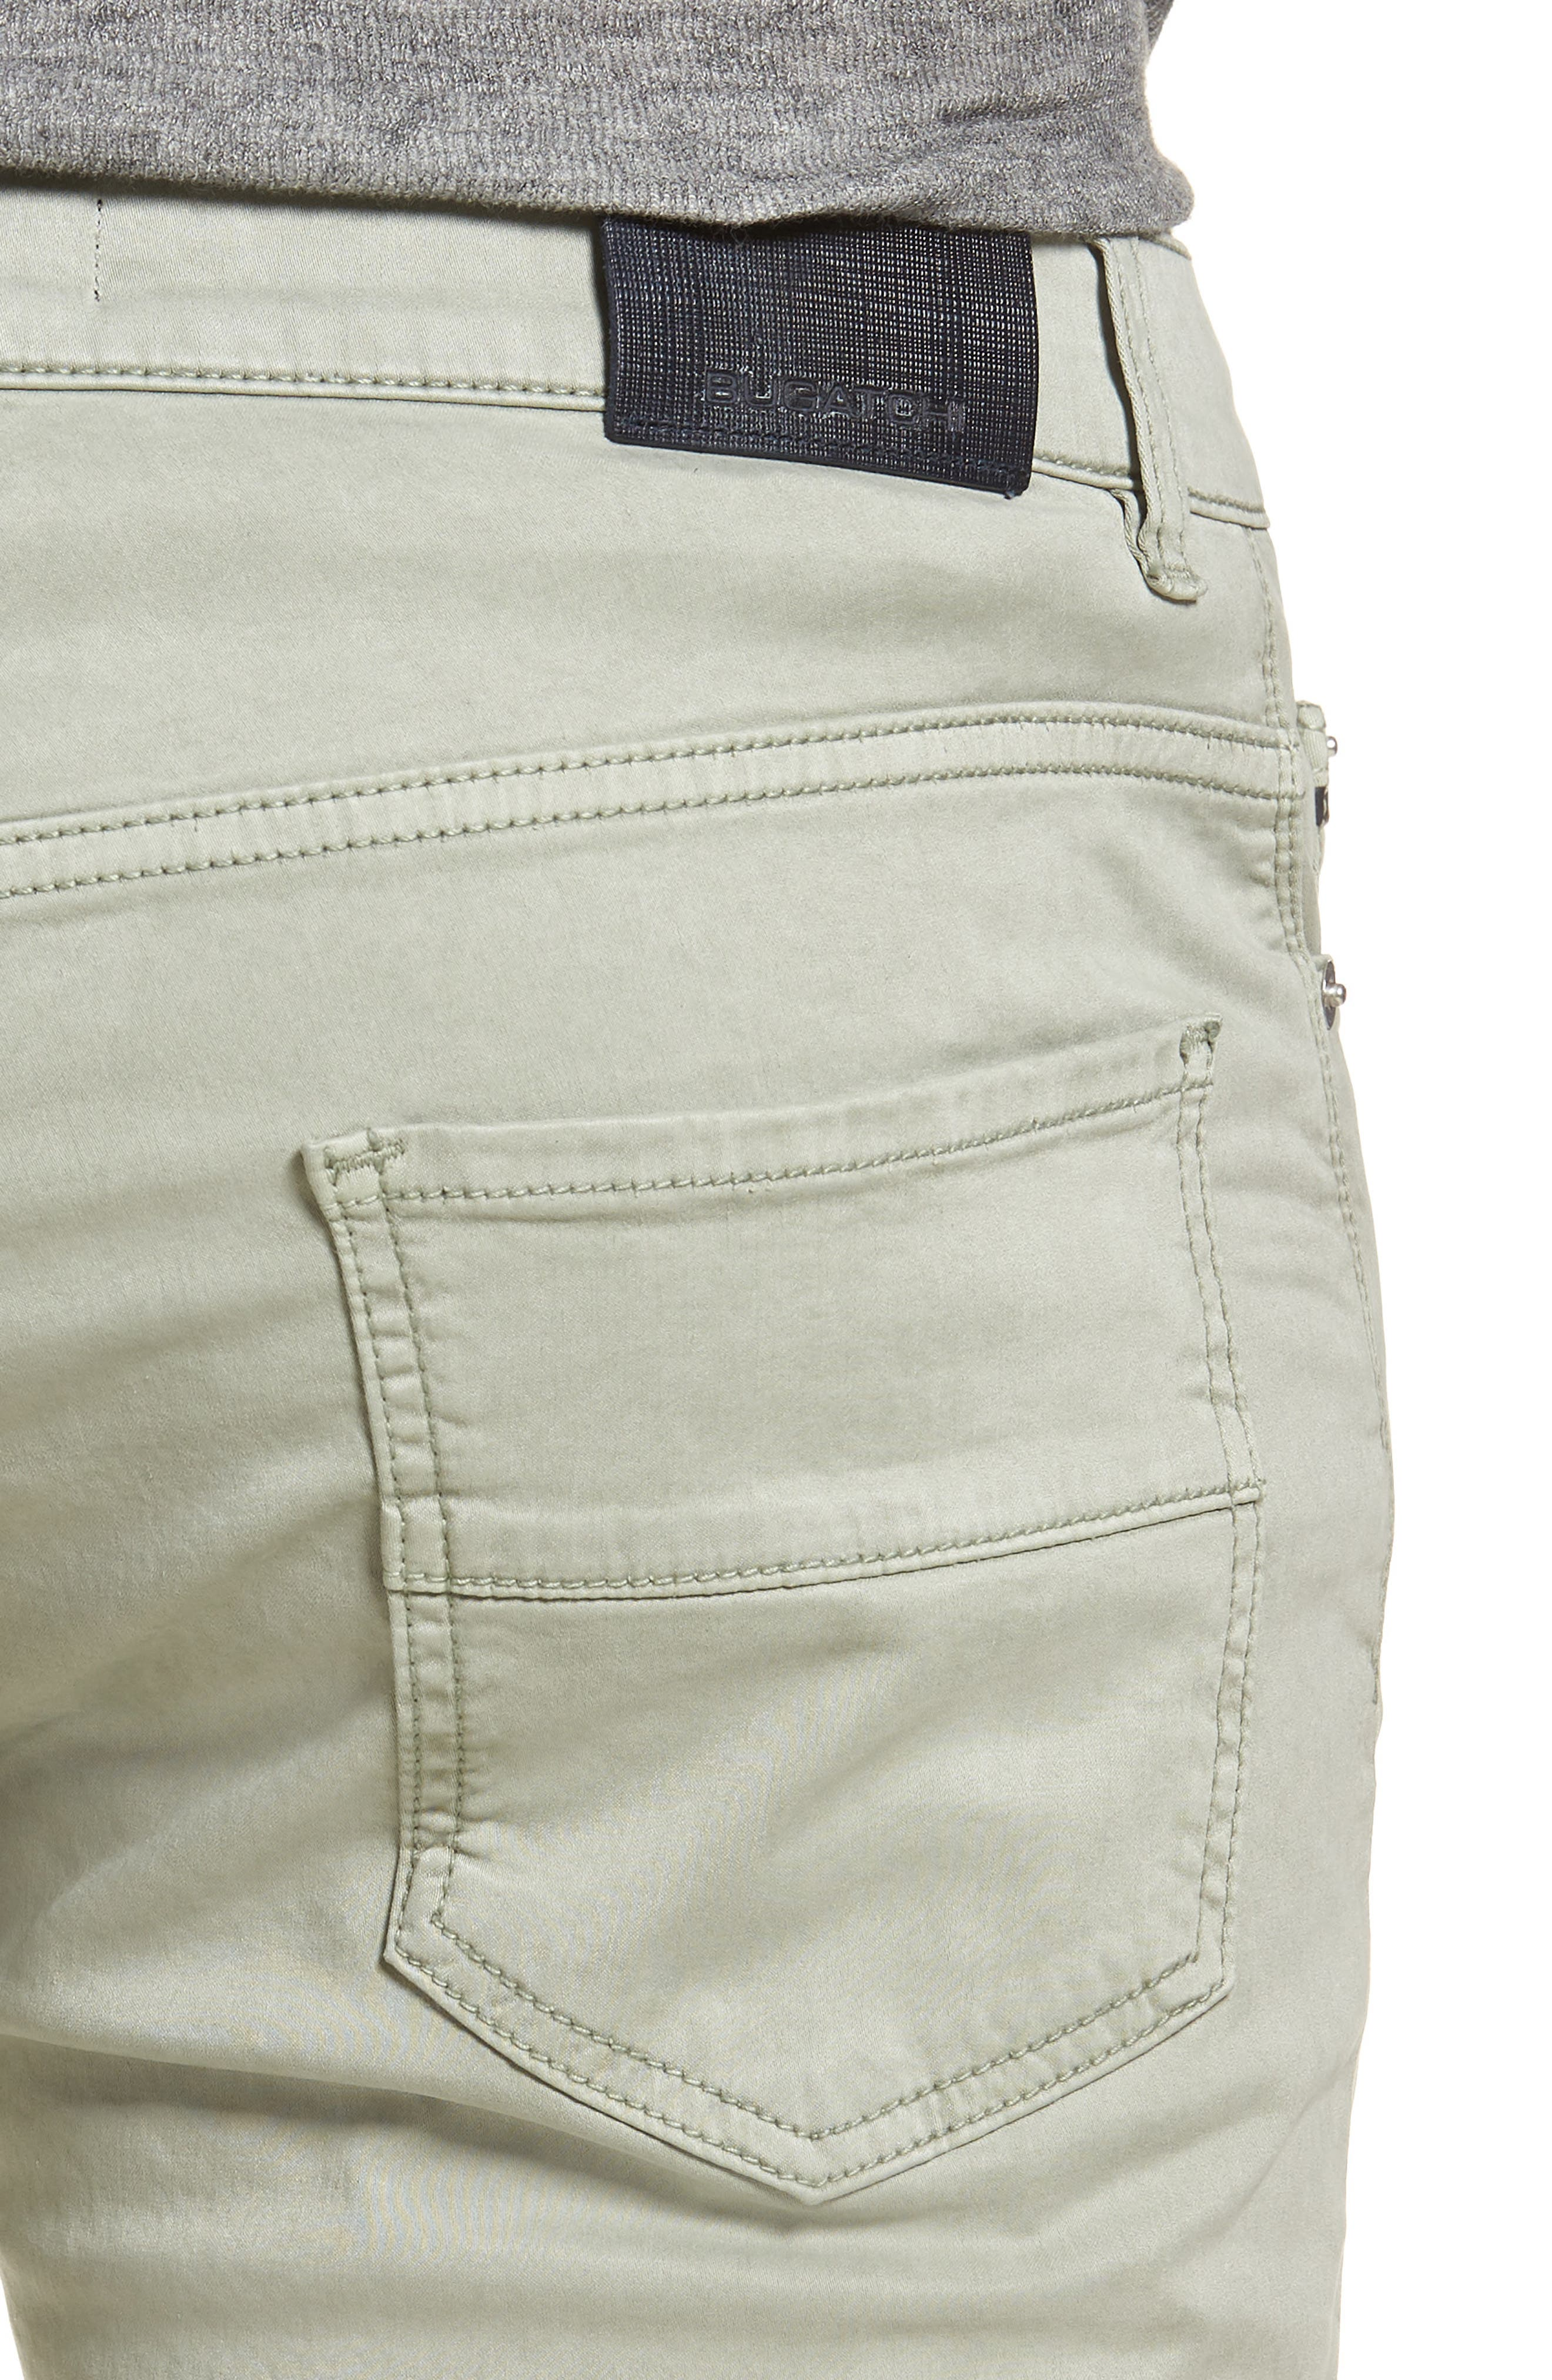 Slim Fit Washed Five-Pocket Pants,                             Alternate thumbnail 4, color,                             Khaki